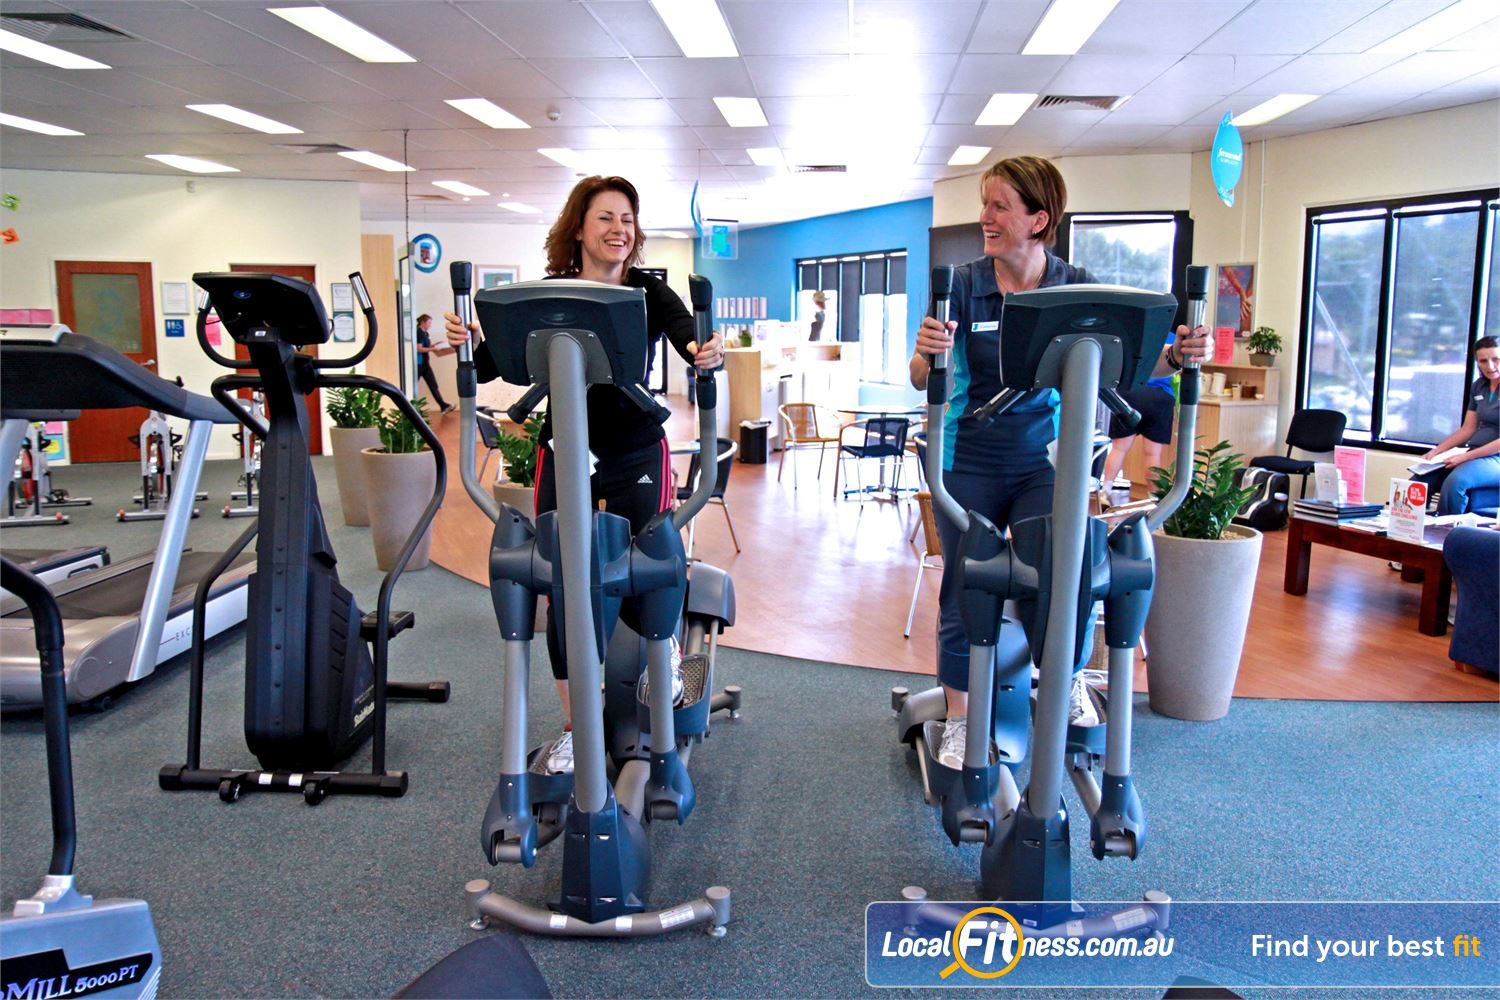 Fernwood Fitness Petrie Vary your workout with our HUGE range of cardio, including cross training in Petrie.